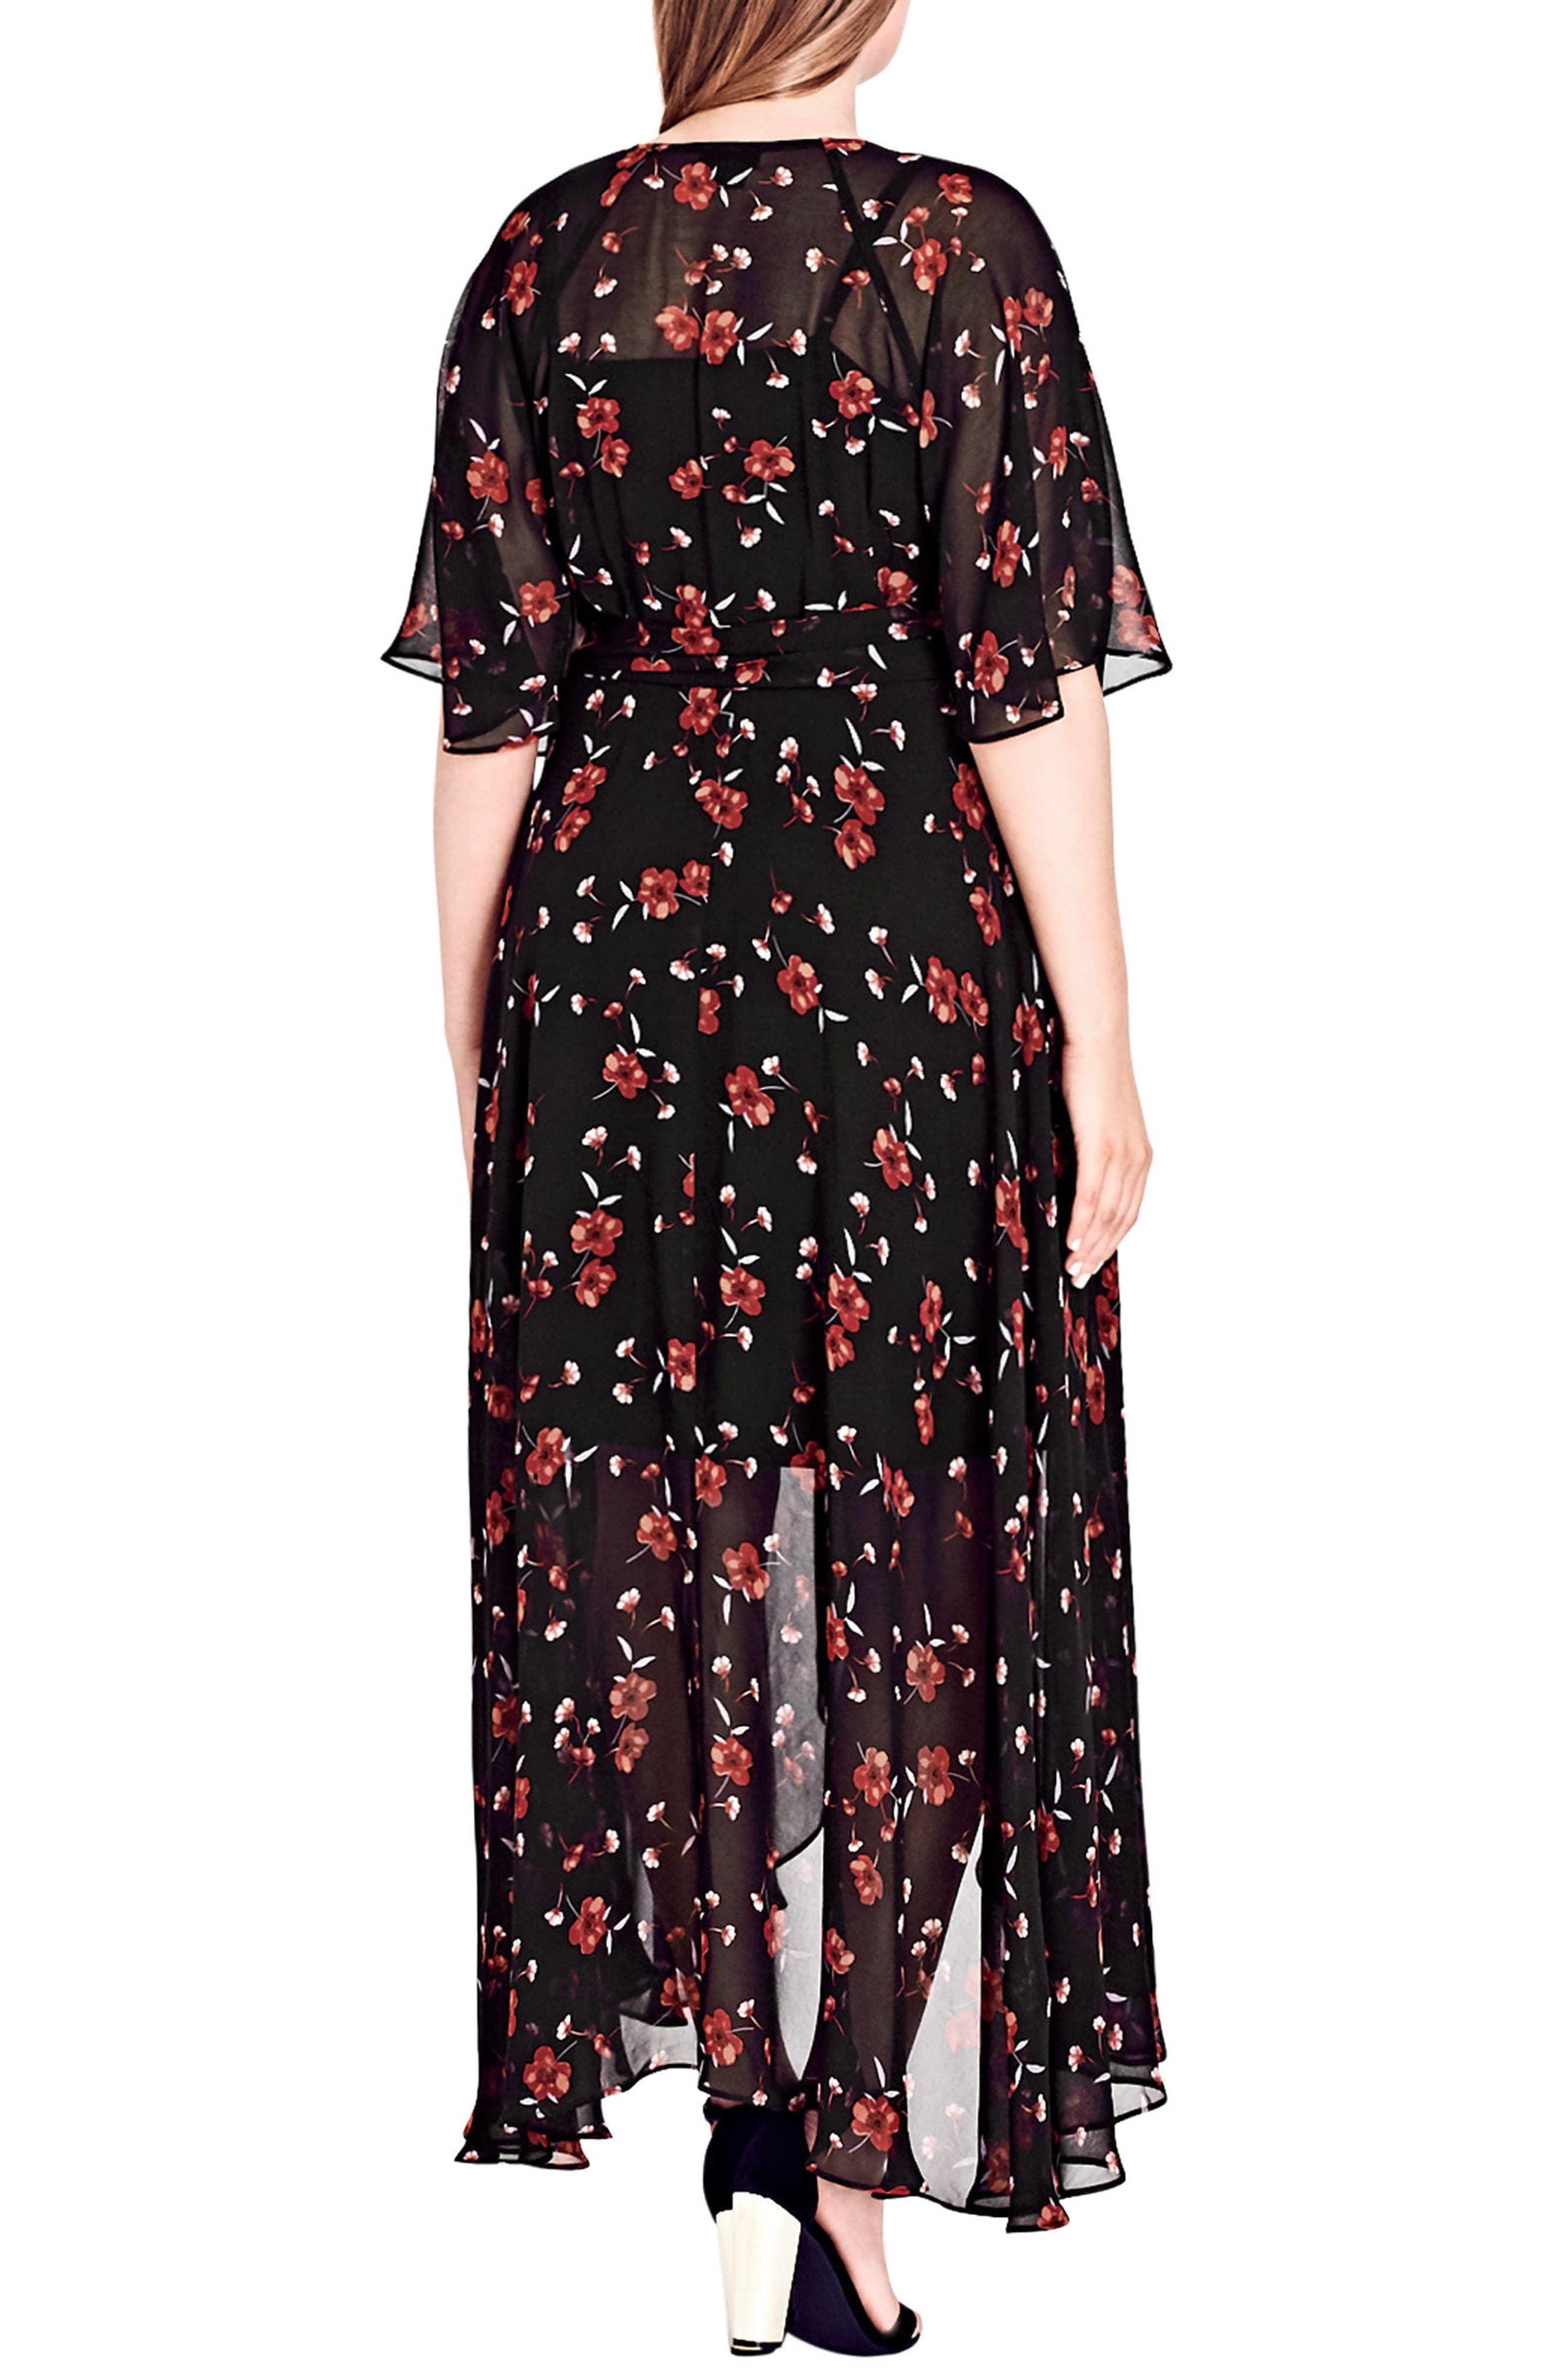 Fall in Love Floral Maxi Dress,                             Alternate thumbnail 2, color,                             BLACK